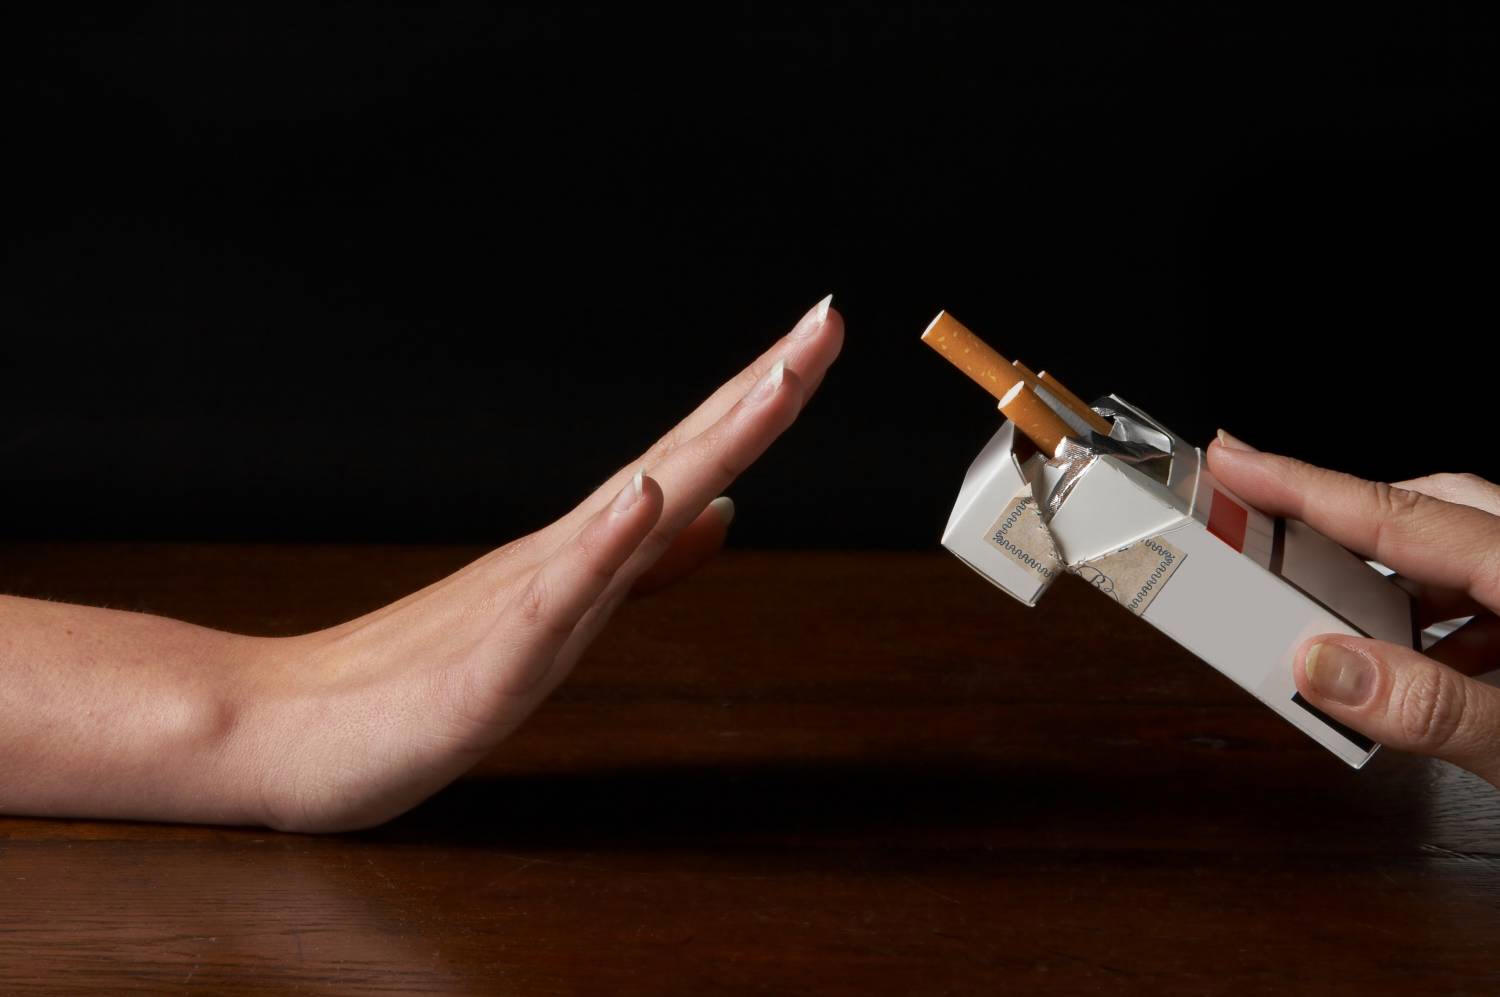 the merits of using graphic warnings of cigarette packets as proposed by action council on smoking a All cigarettes must be sold in standardised green packaging bearing graphic images and warnings of the ordinary cigarette packets told the independent.